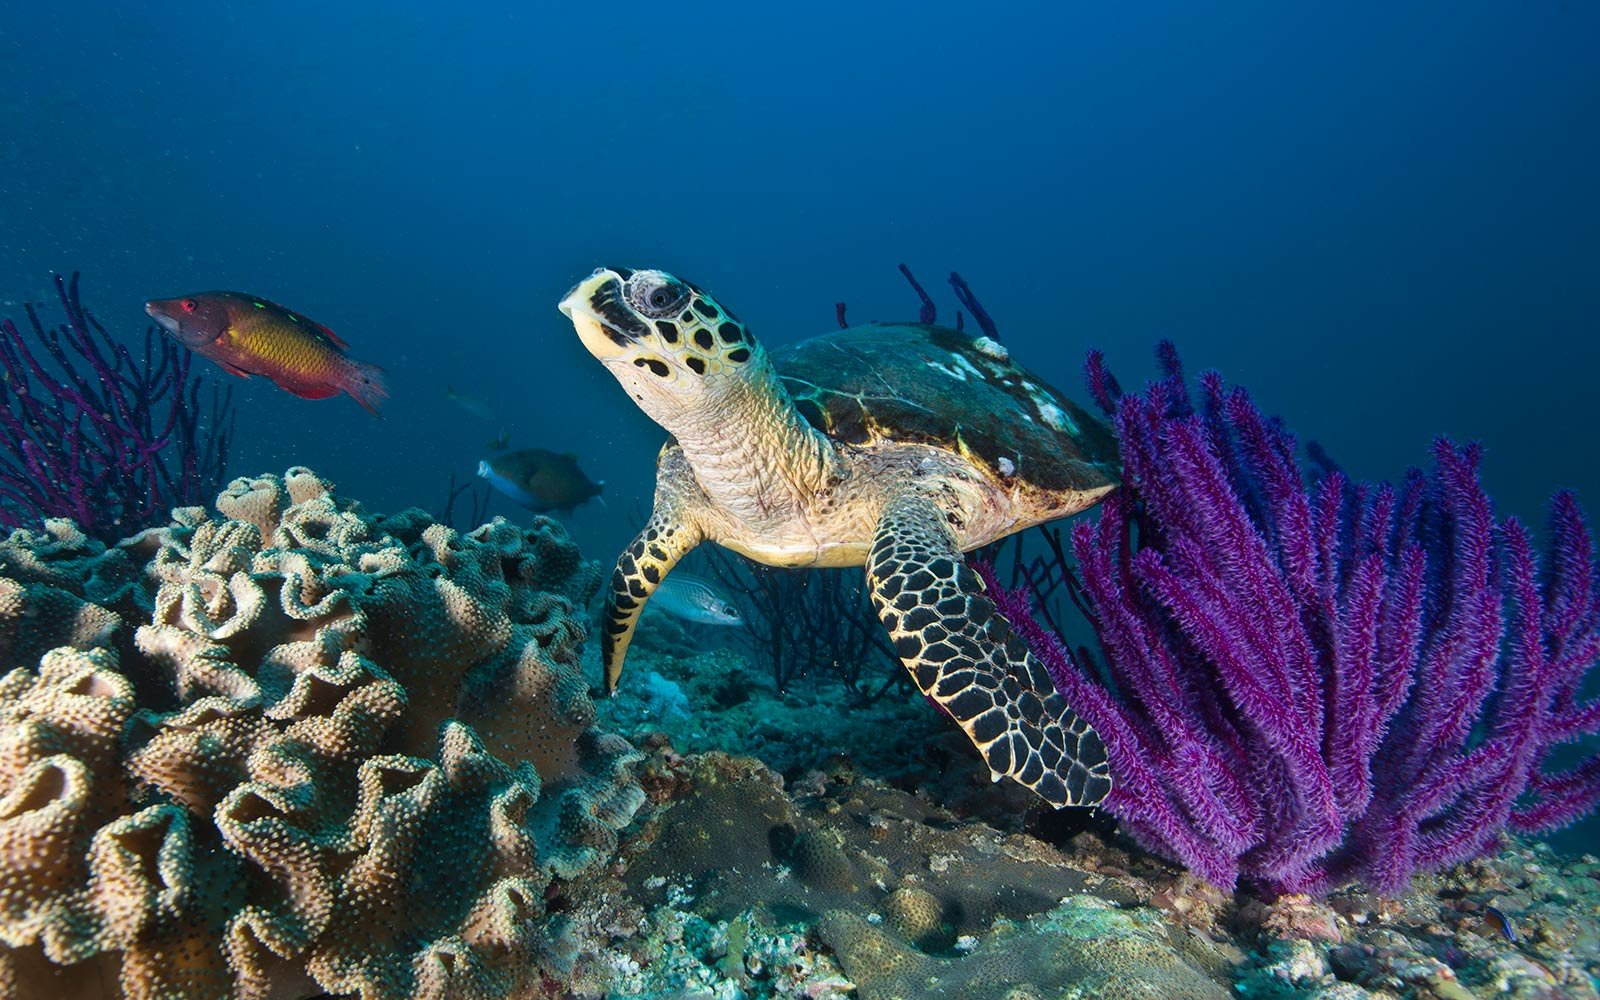 Coral Reef in Oman